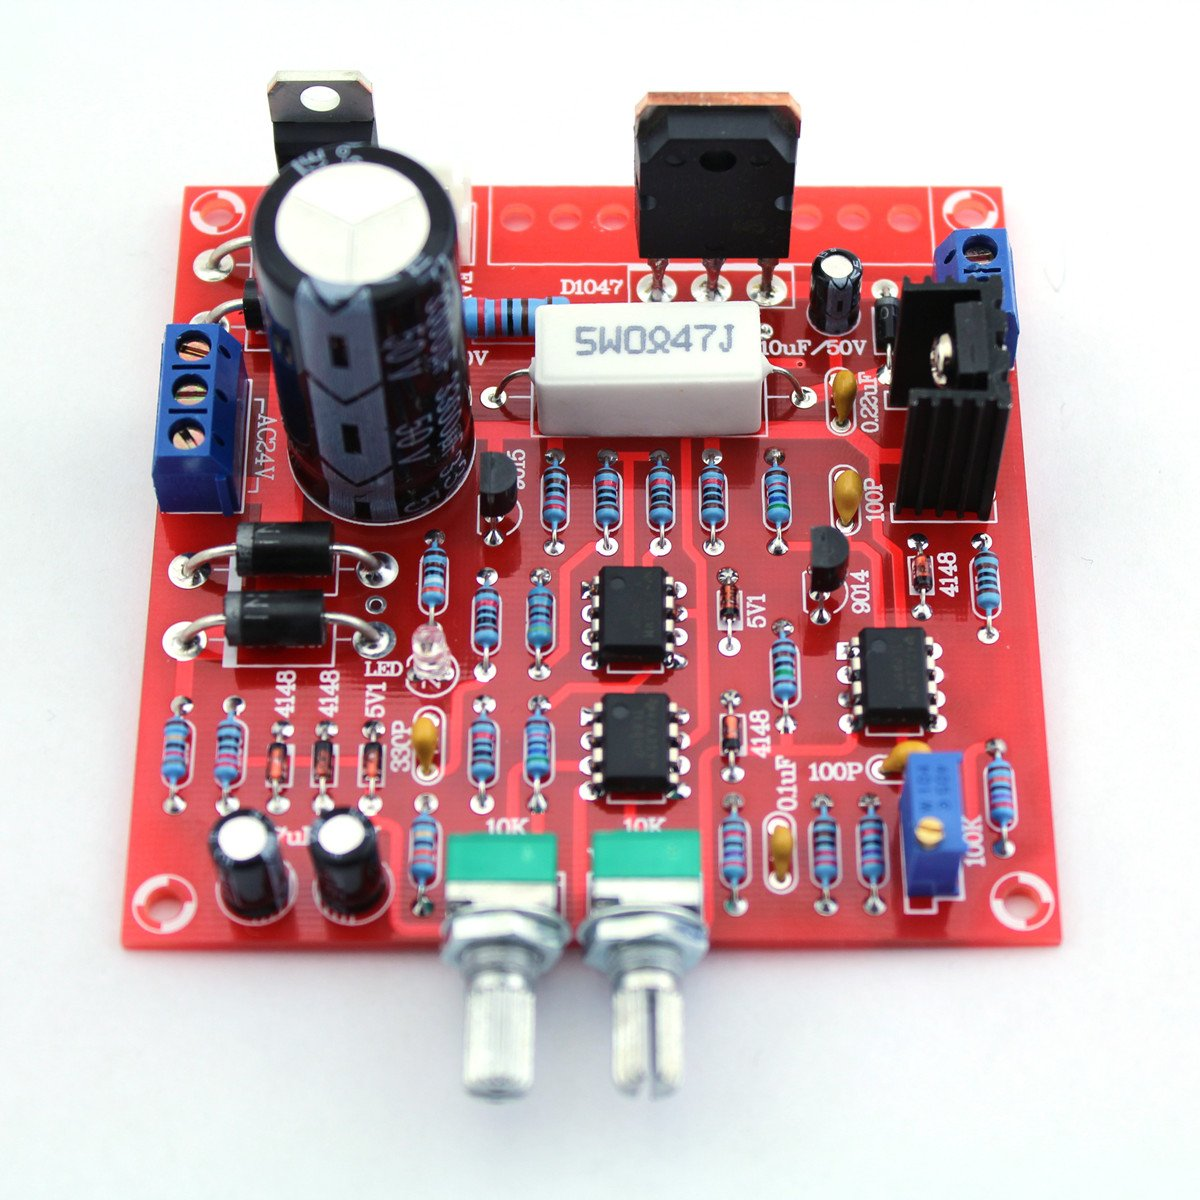 0 30v 2ma 3a Adjustable Dc Regulated Power Supply Diy How To Build 5v Circuit Diagram Kit Short Current Limiting Protection Electronics